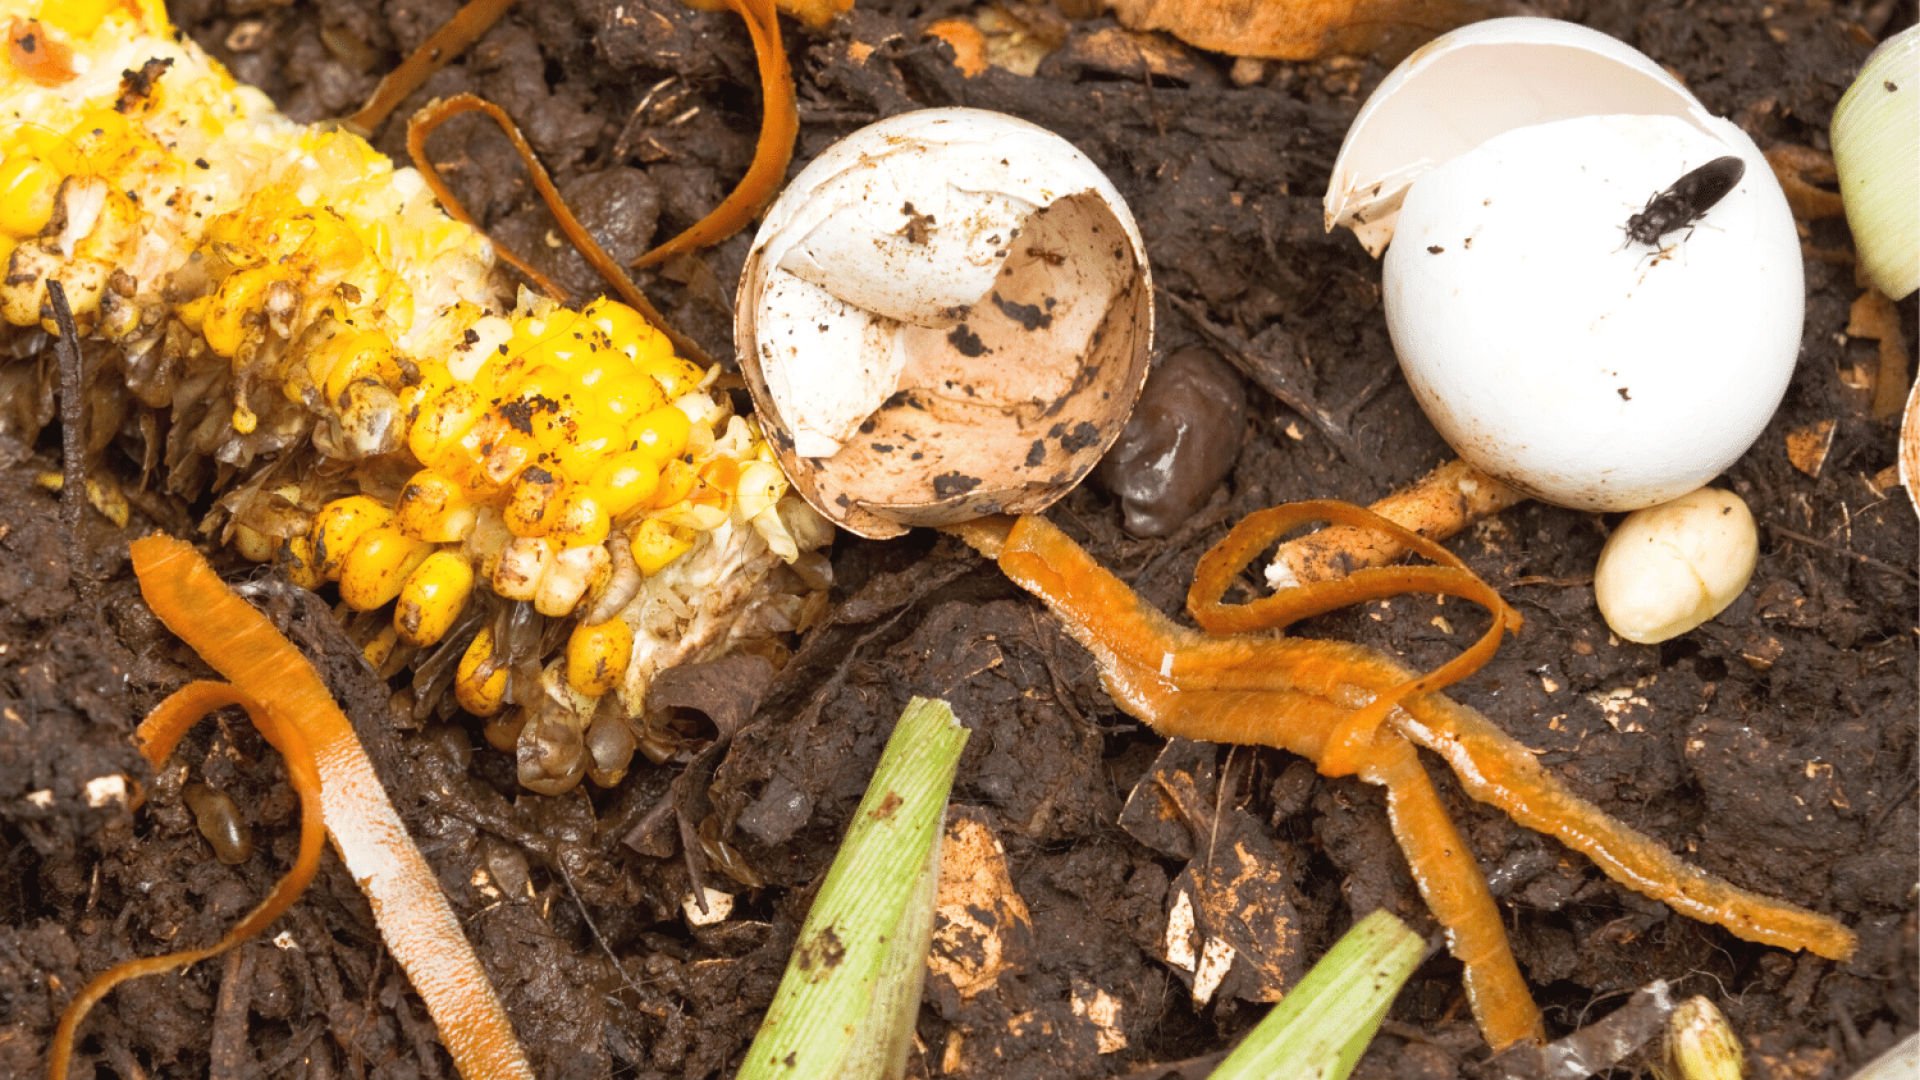 Mealworms or Black Soldier Fly Larvae In Compost: Here's What You Need To Know